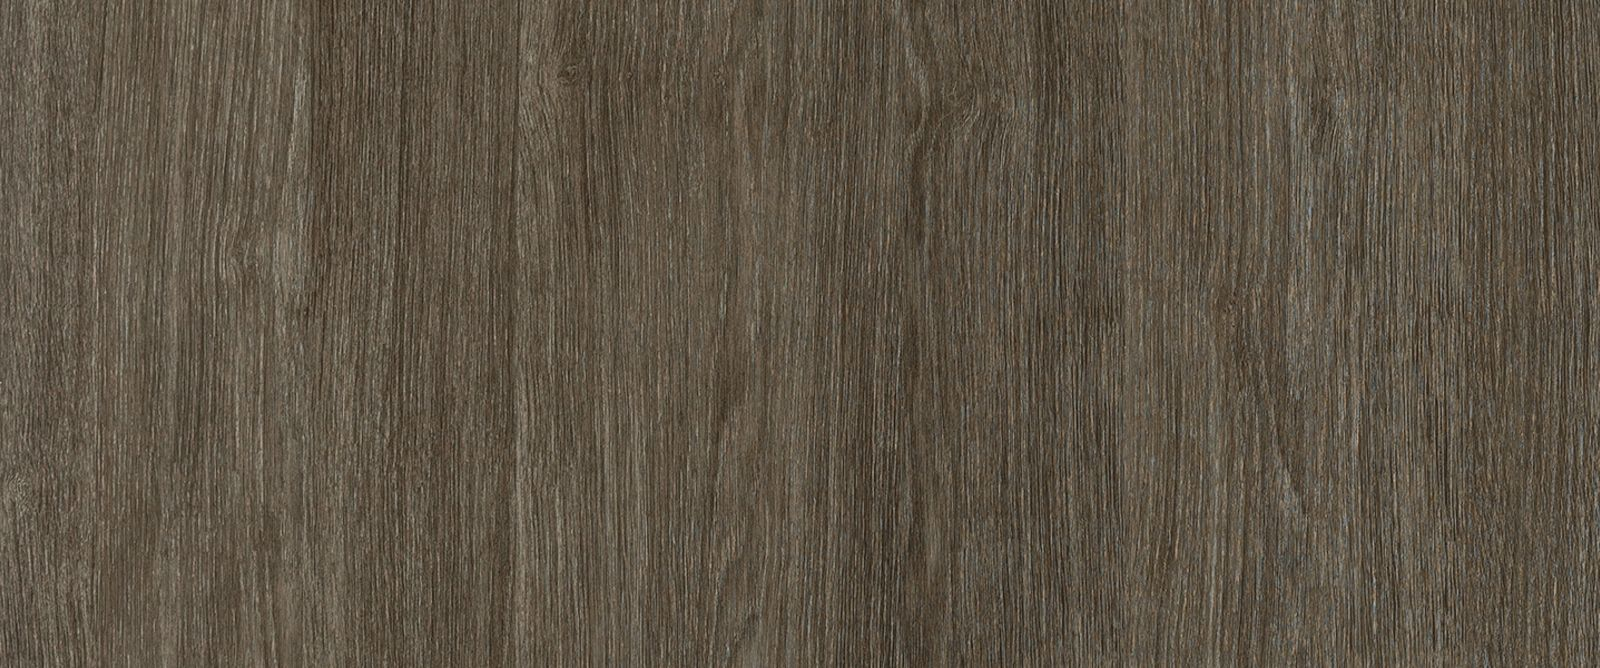 skai® Sheffield Oak brown